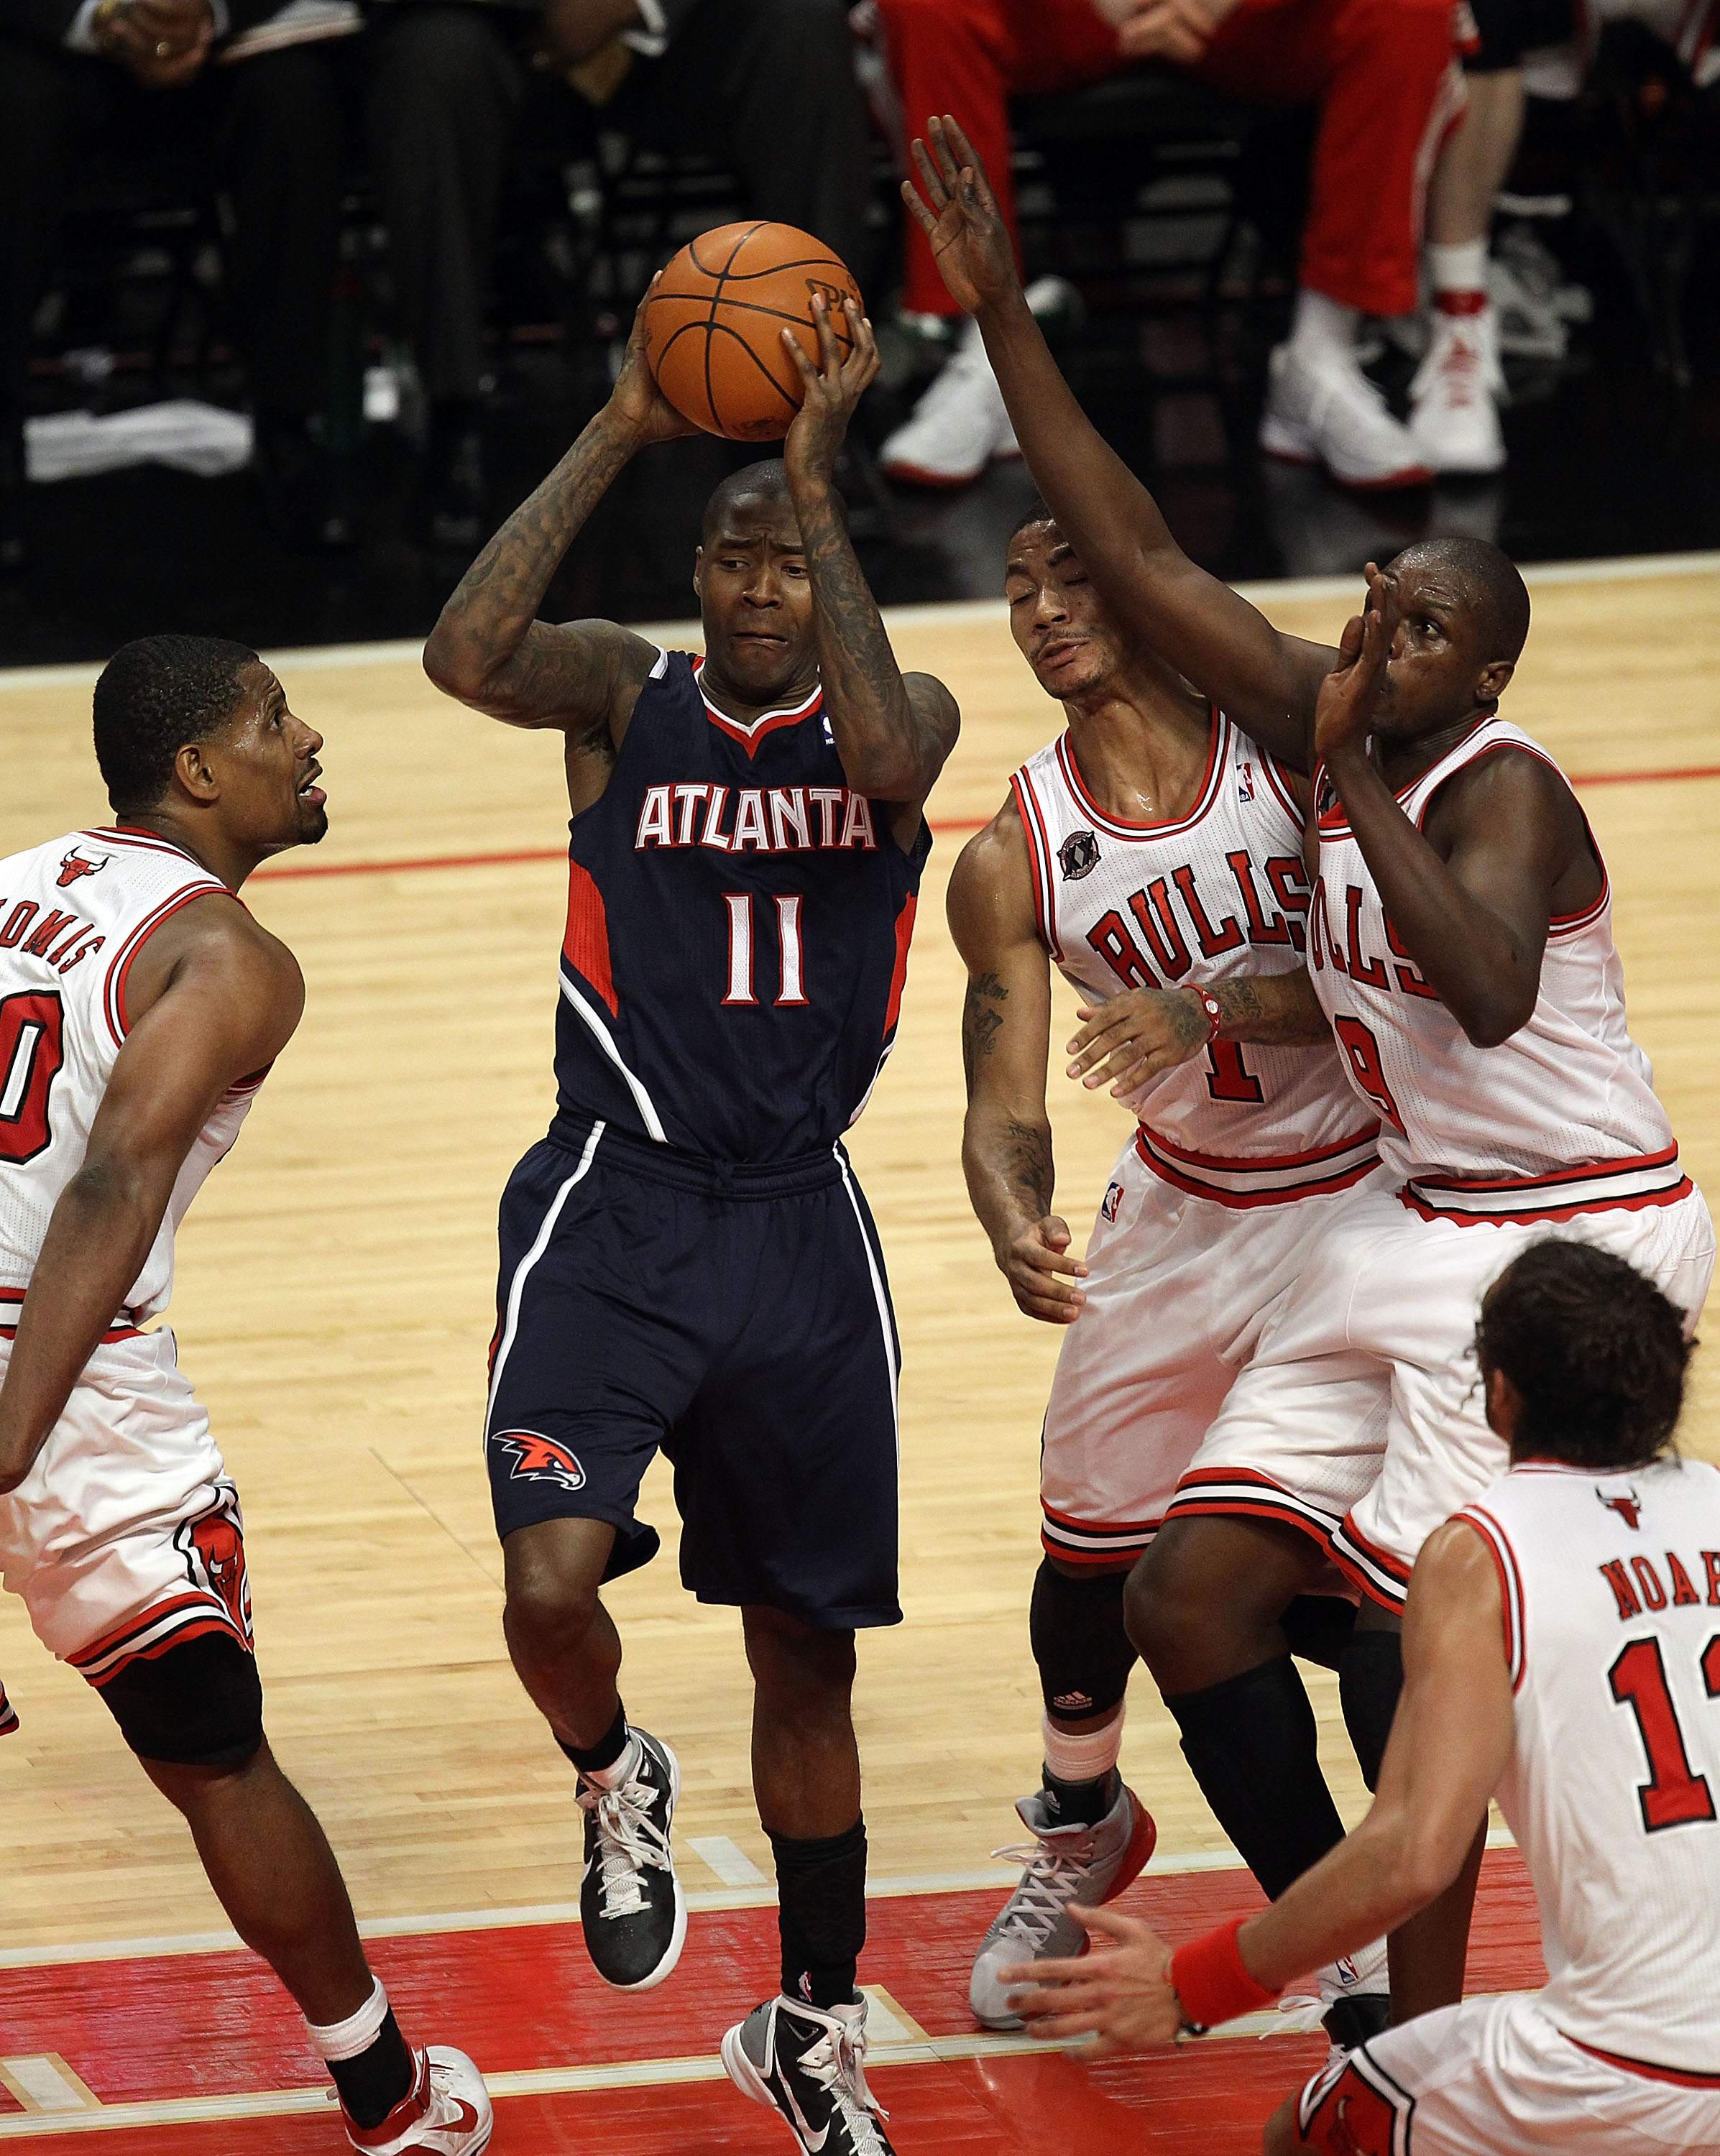 CHICAGO, IL - MARCH 11: Jamal Crawford #11 of the Atlanta Hawks passes the ball surrounded by (L-R)  Kurt Thomas #40, Derrick Rose #1, Loul Deng #9 and Joakim Noah #13 of the Chicago Bulls at the United Center on March 11, 2011 in Chicago, Illinois. The B